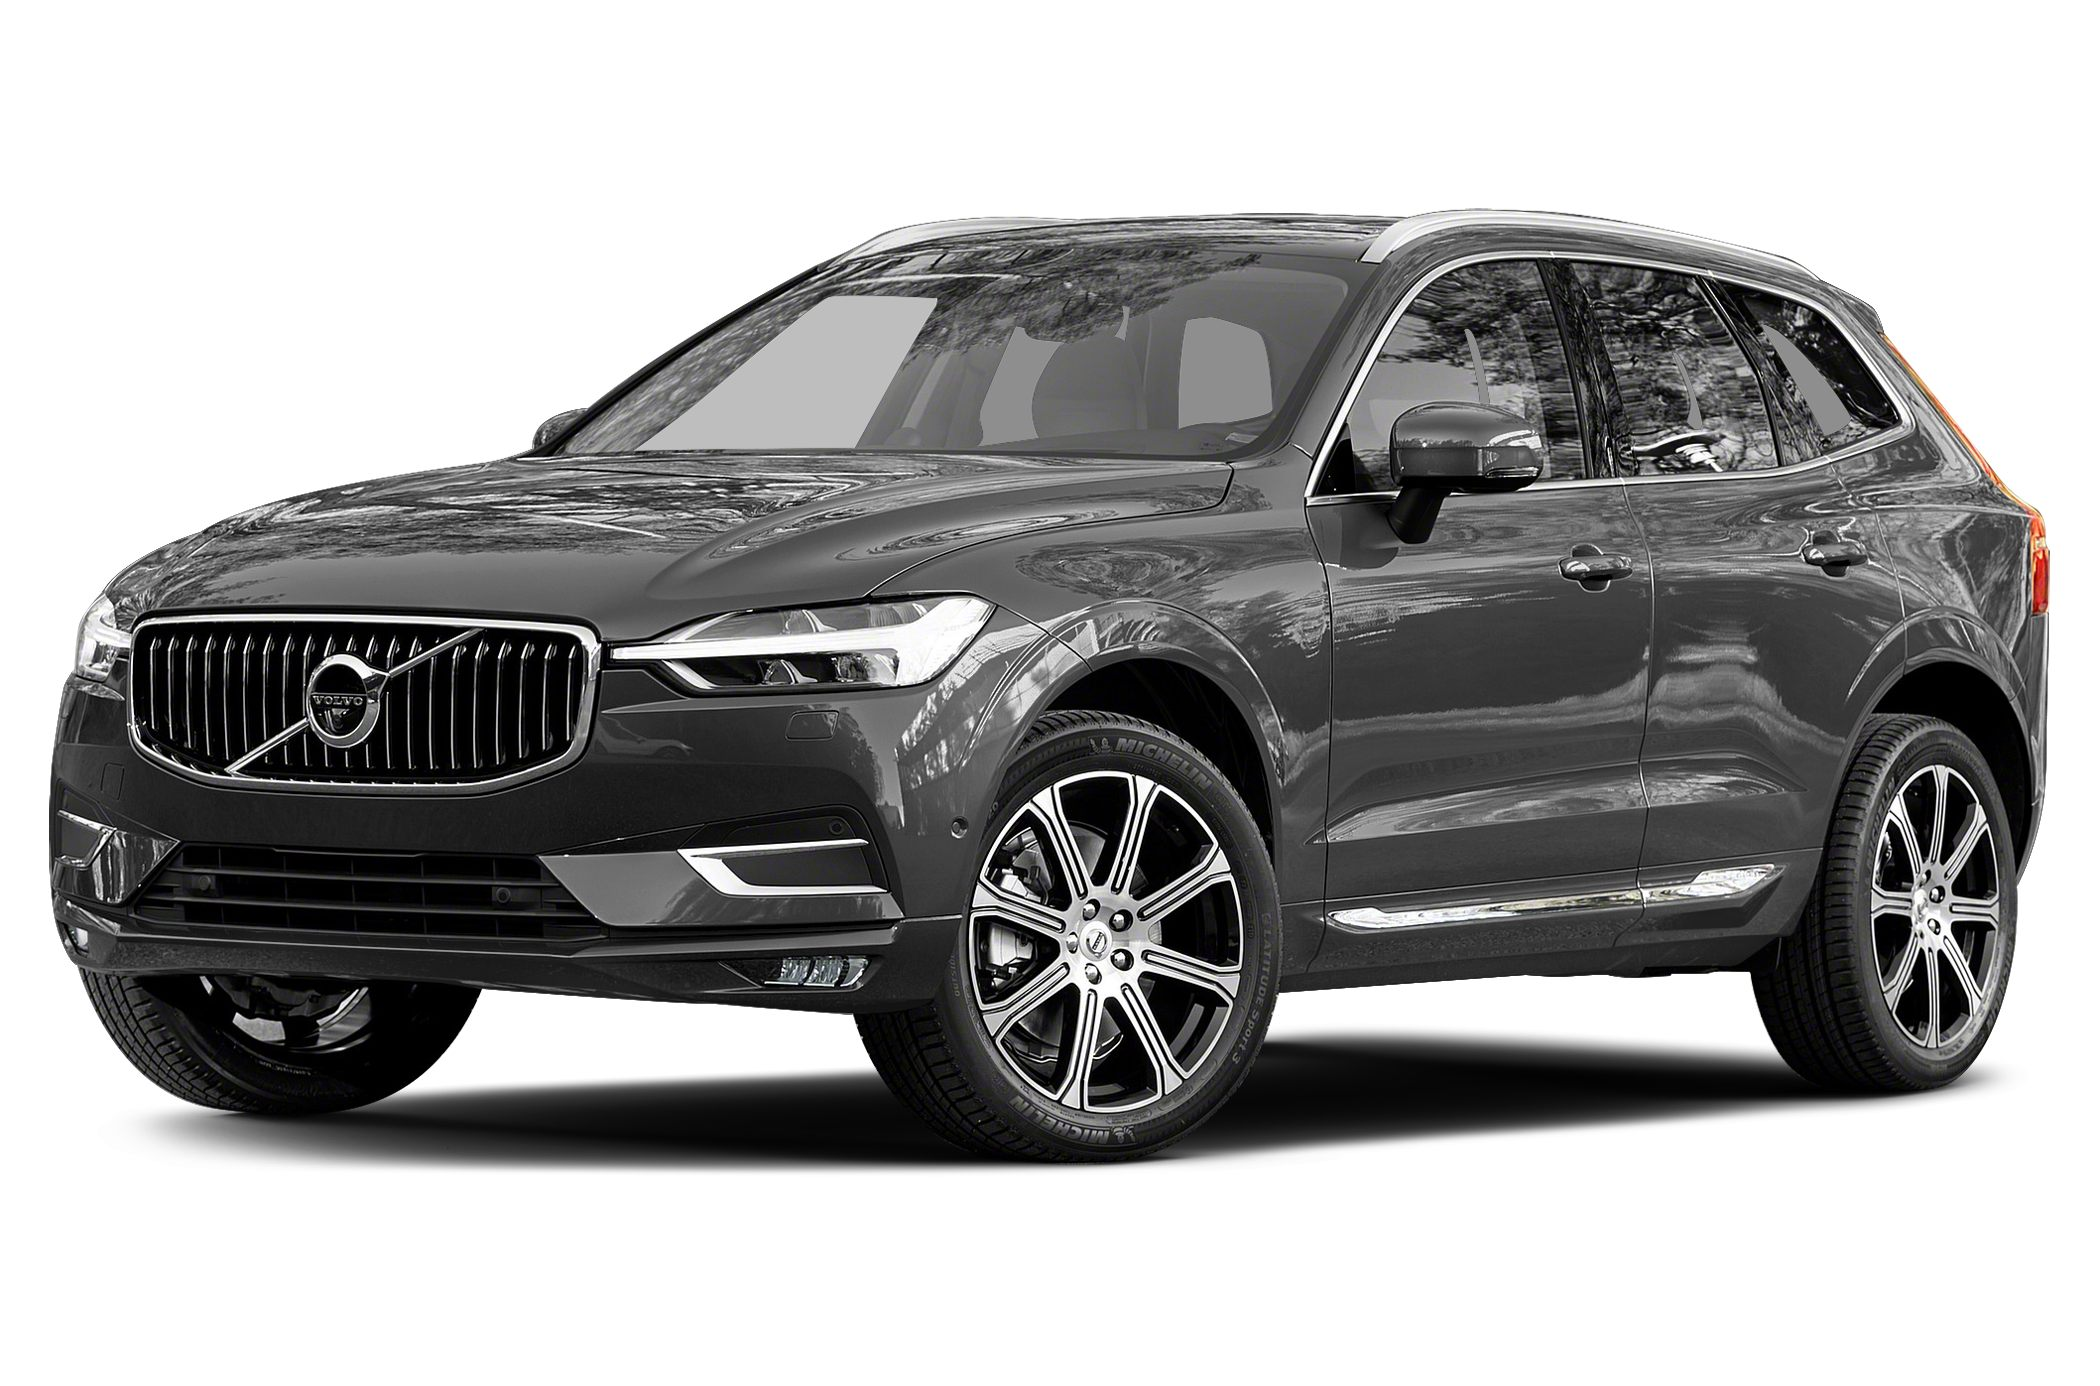 volvo xc60 best low price lease deal tri state auto broker. Black Bedroom Furniture Sets. Home Design Ideas